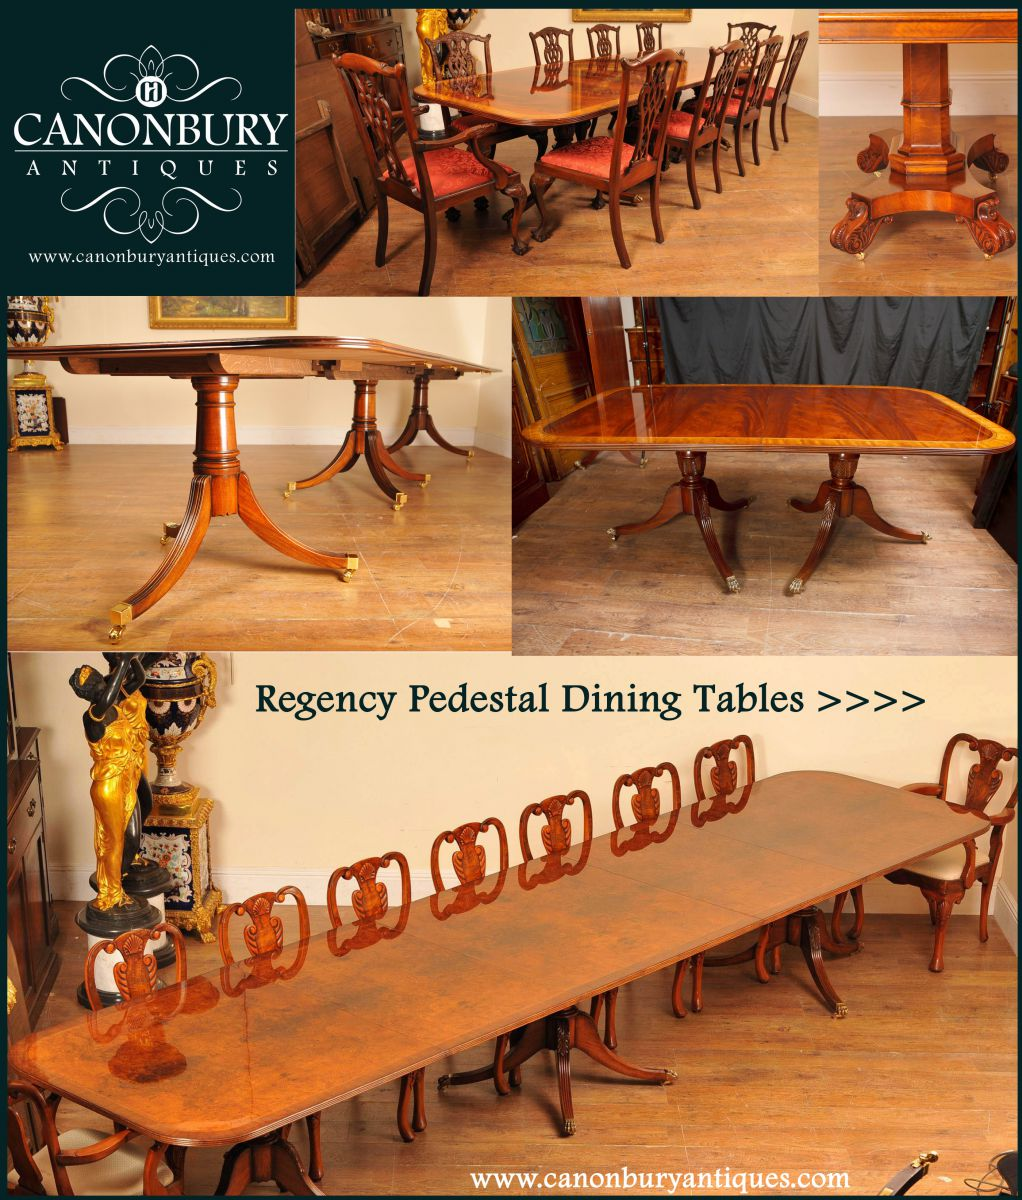 Dining sets and furniture for a Regency era costume drama ?